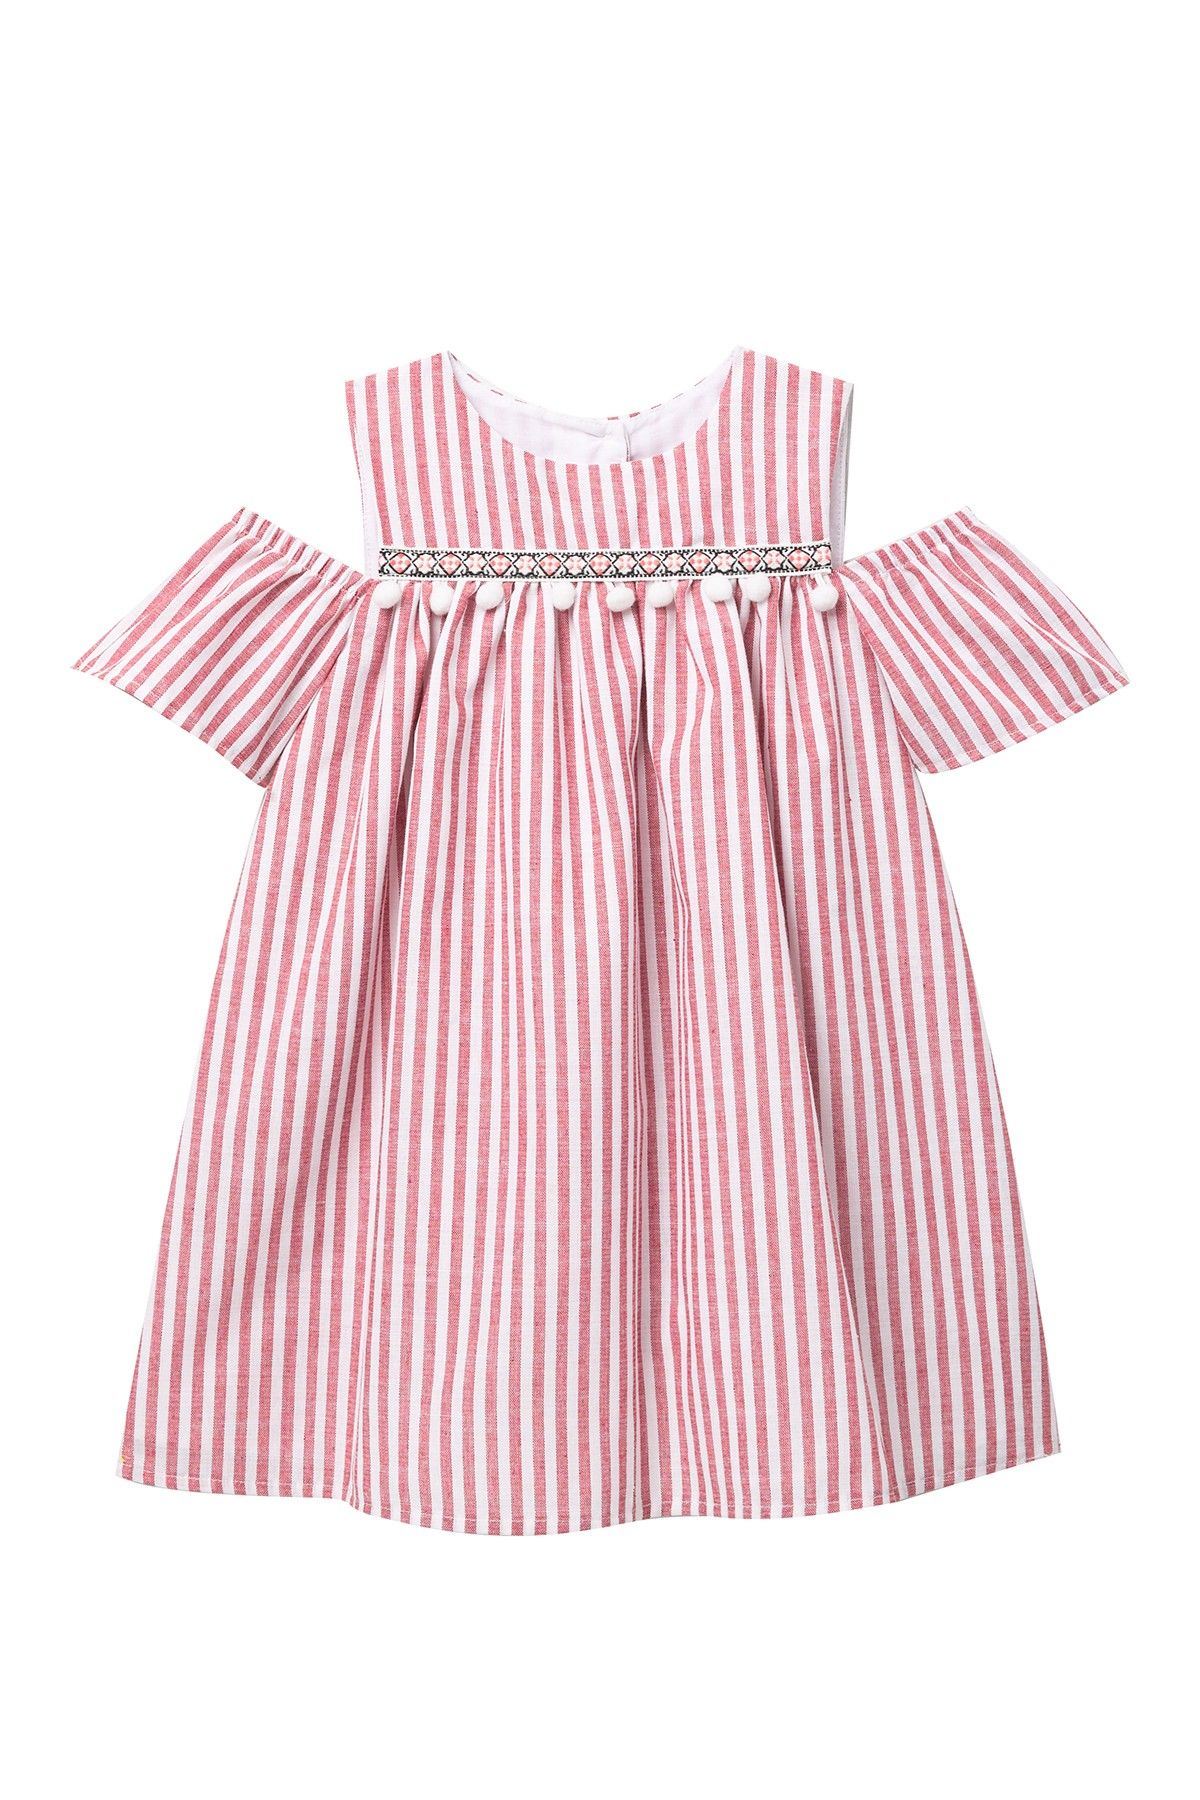 efedaa7601c4 Pastourelle by Pippa and Julie - Stripe Cold Shoulder Dress (Little Girls)  is now 60% off. Free Shipping on orders over $100.